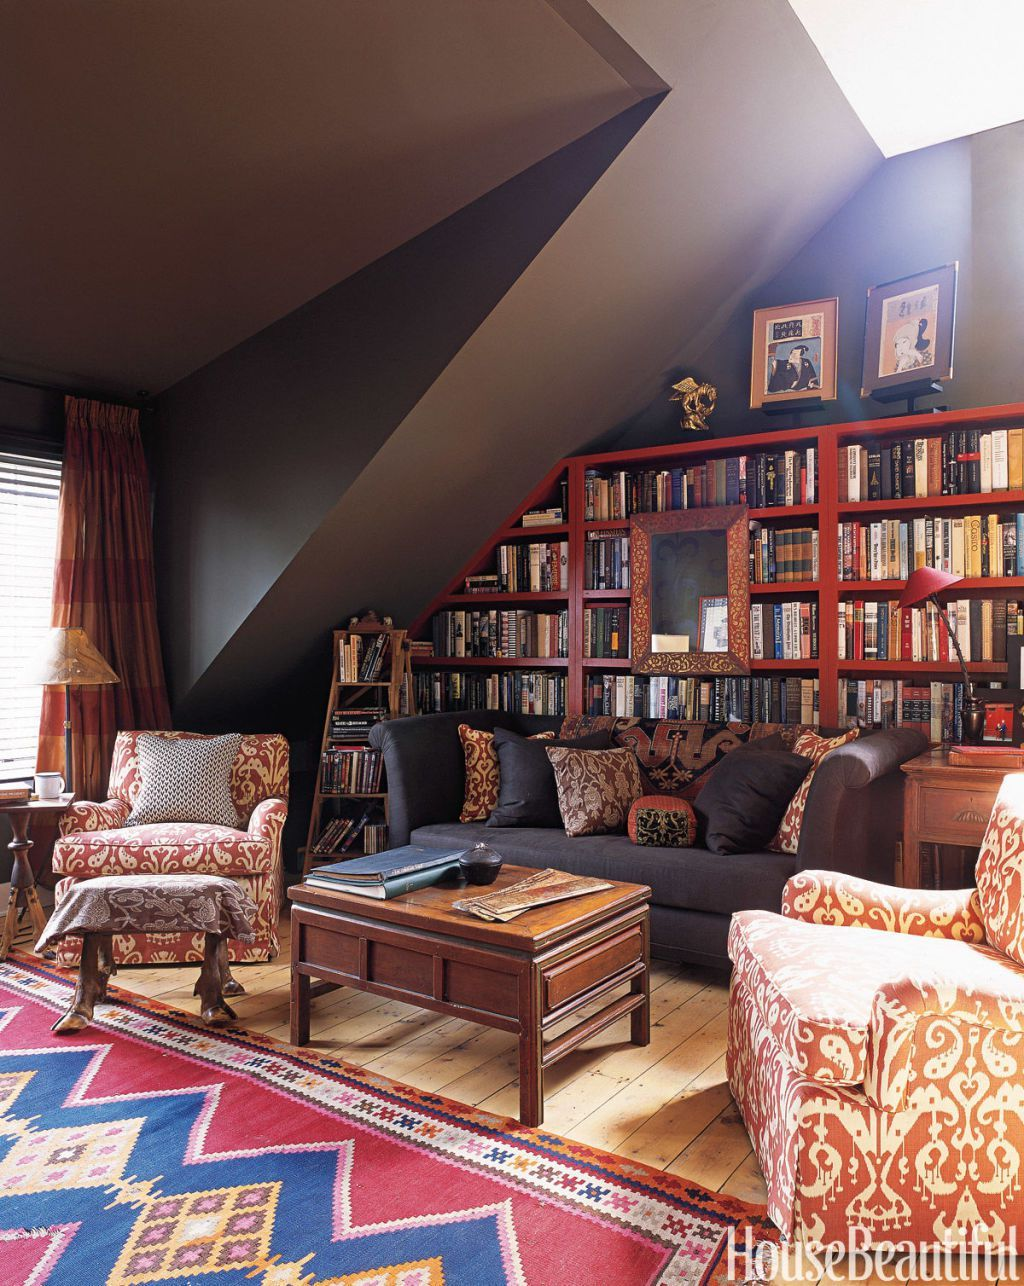 Beautiful Home Library Rooms: Here Are 45 Stylish Home Libraries For The Fantasy File